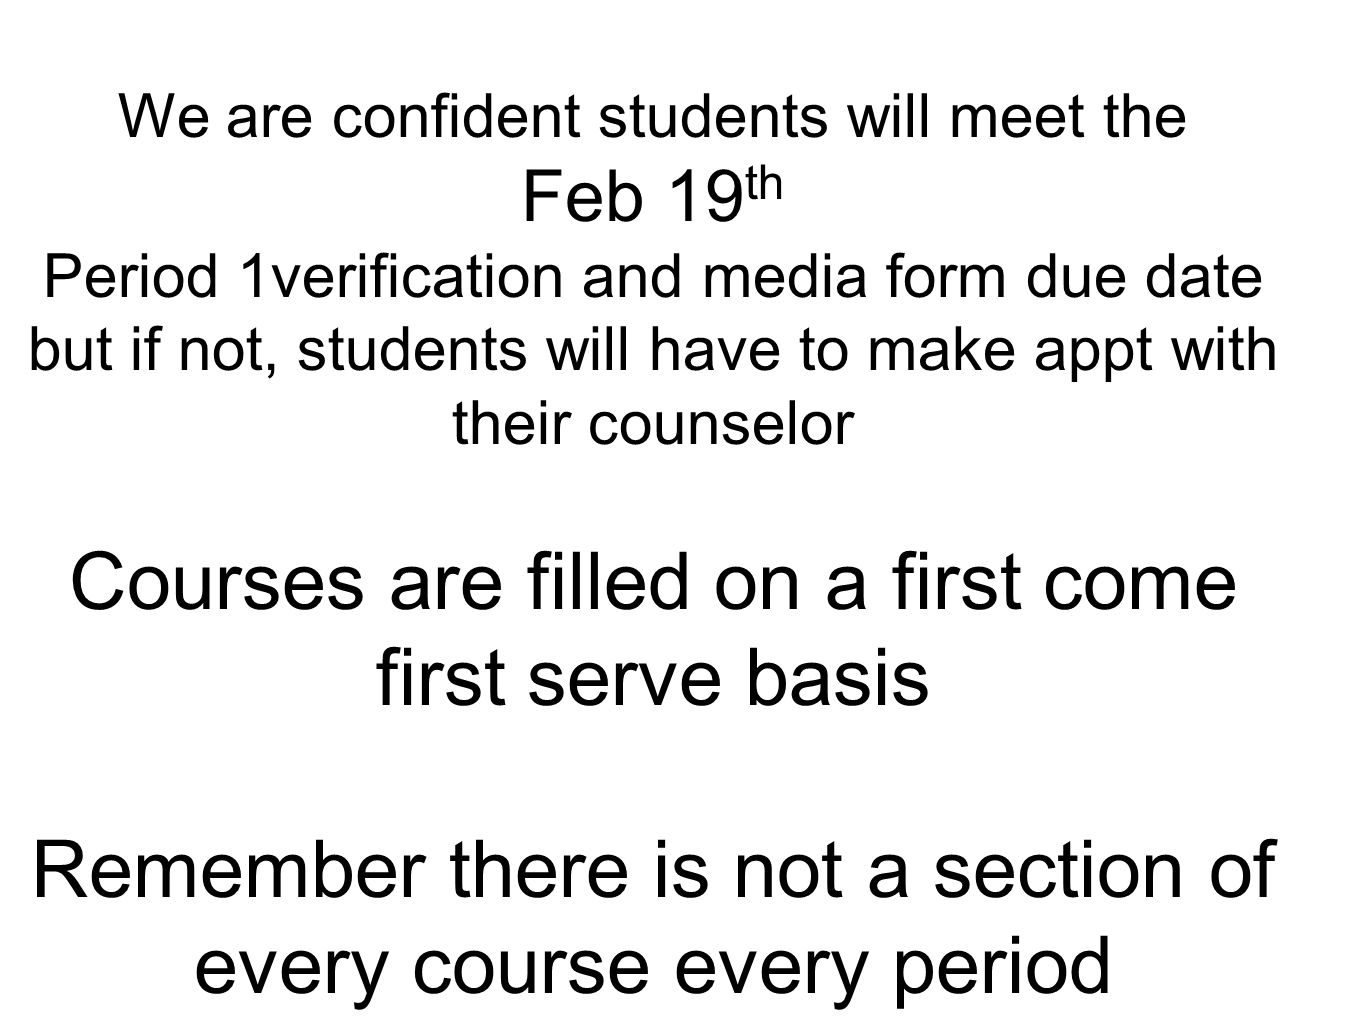 We are confident students will meet the Feb 19 th Period 1verification and media form due date but if not, students will have to make appt with their